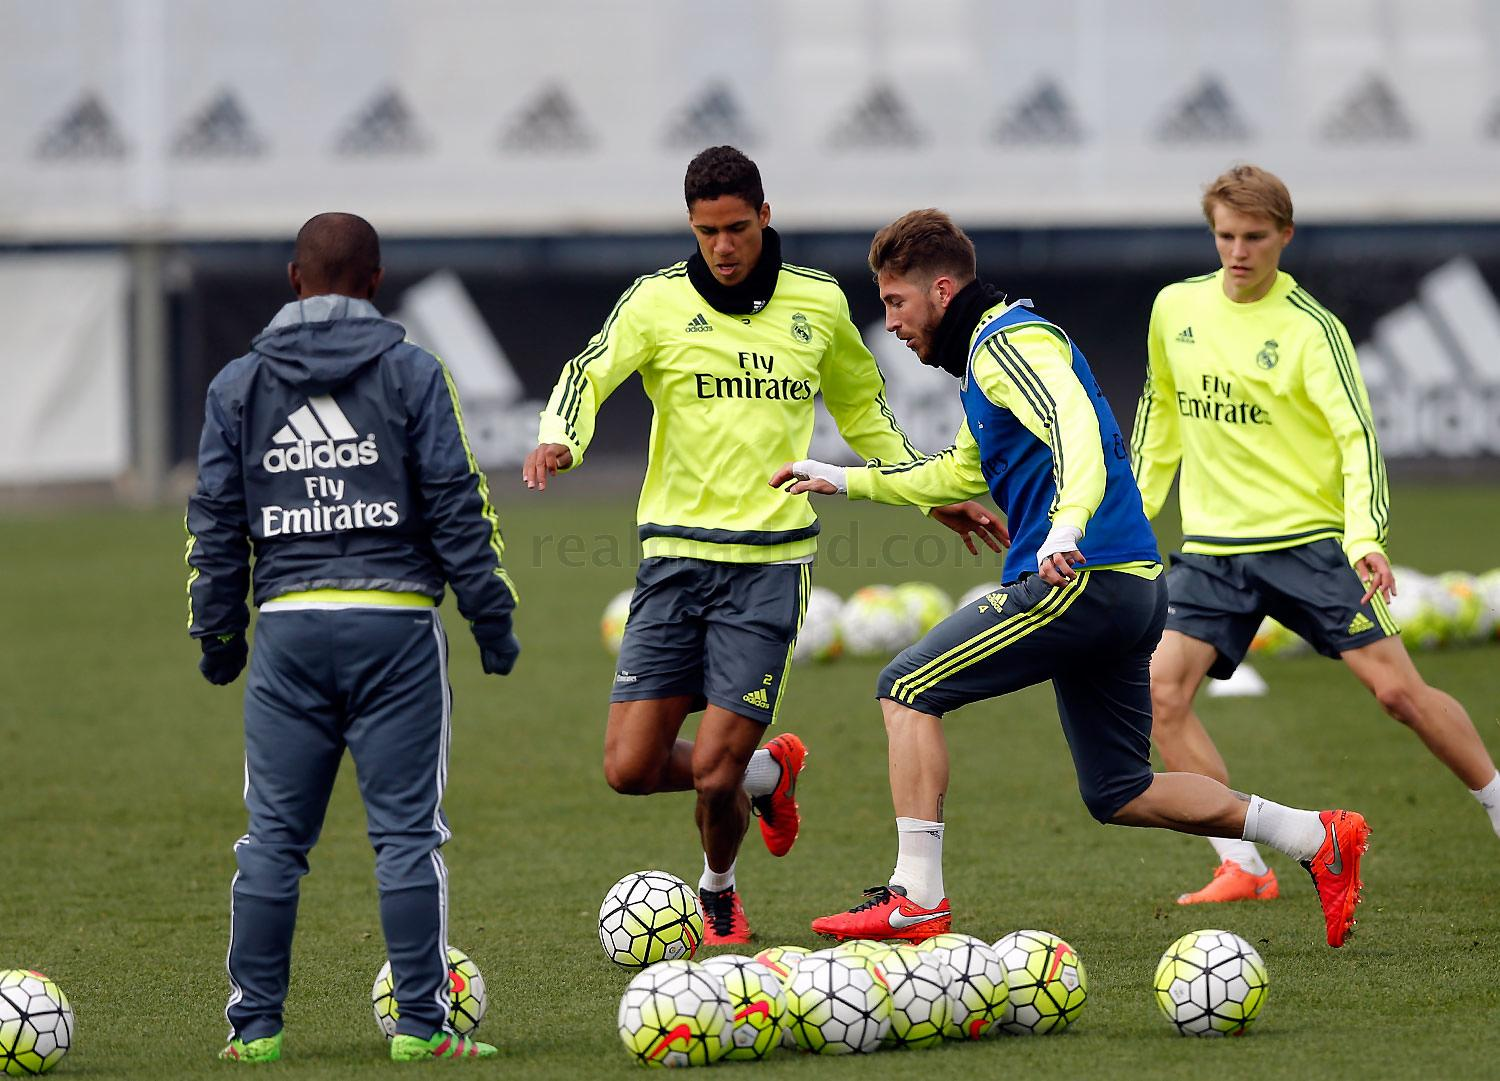 Real Madrid - Entrenamiento del Real Madrid - 24-02-2016